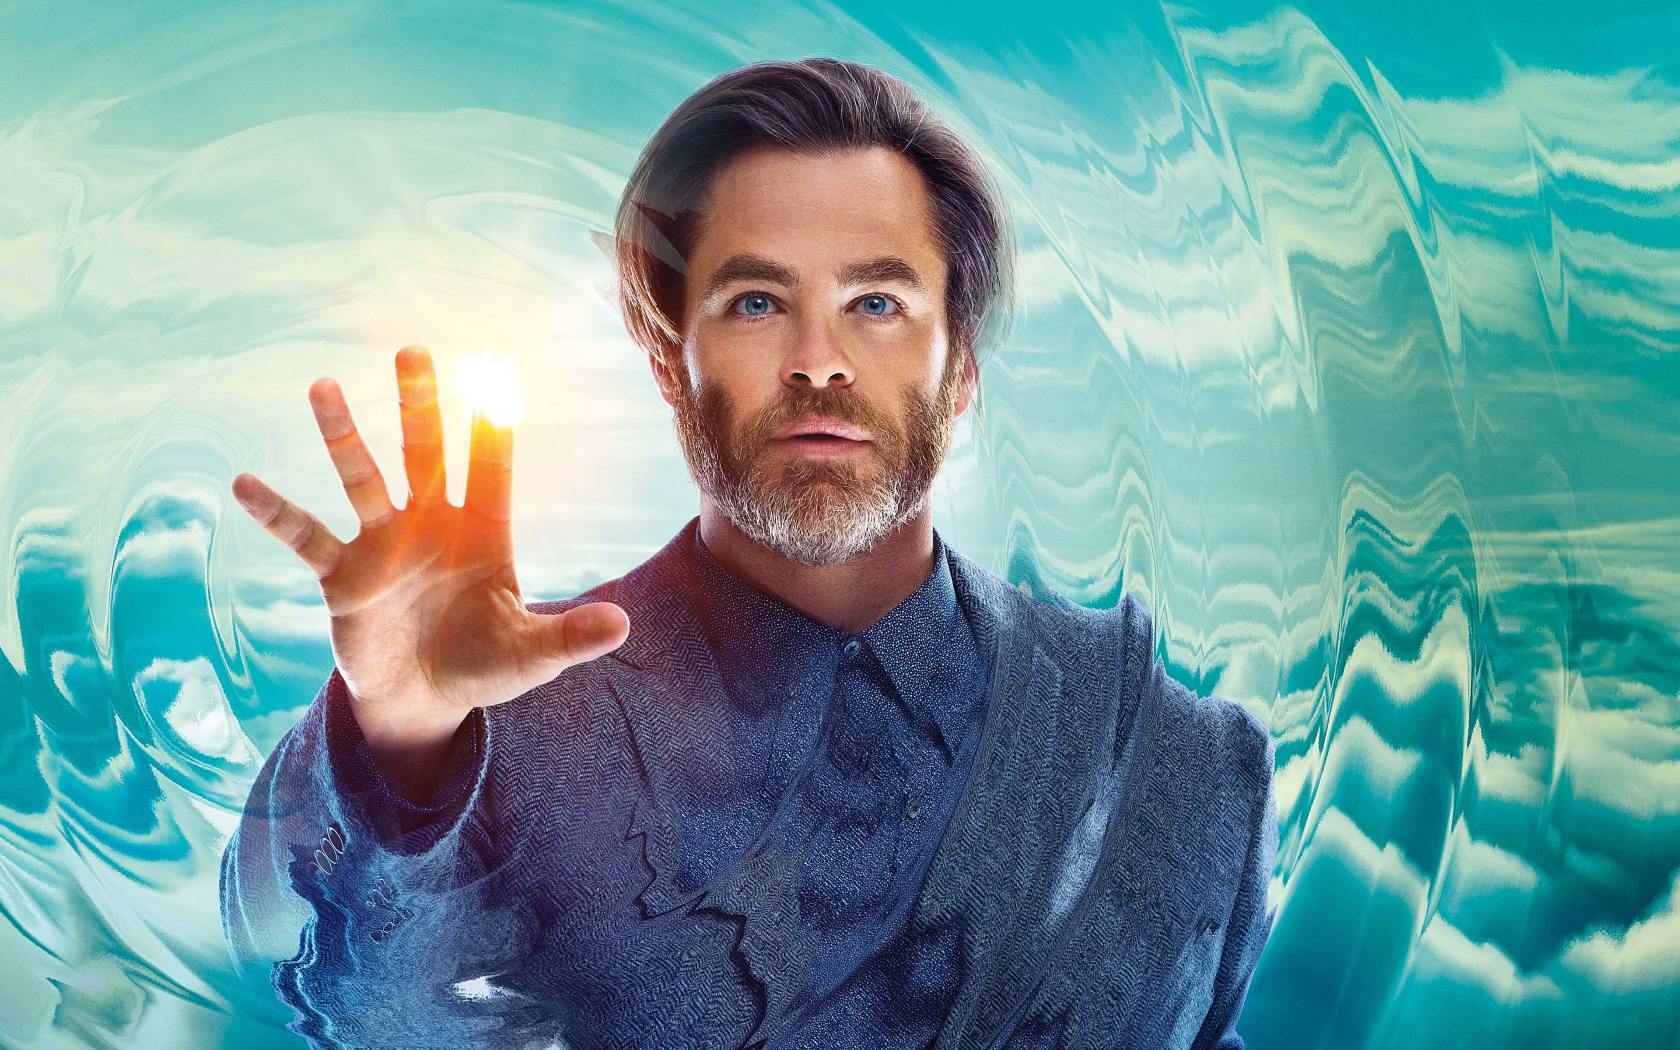 A Wrinkle In Time 2018 Movie Hd Movies 4k Wallpapers: Chris Pine A Wrinkle In Time 2018 Movie, HD 4K Wallpaper